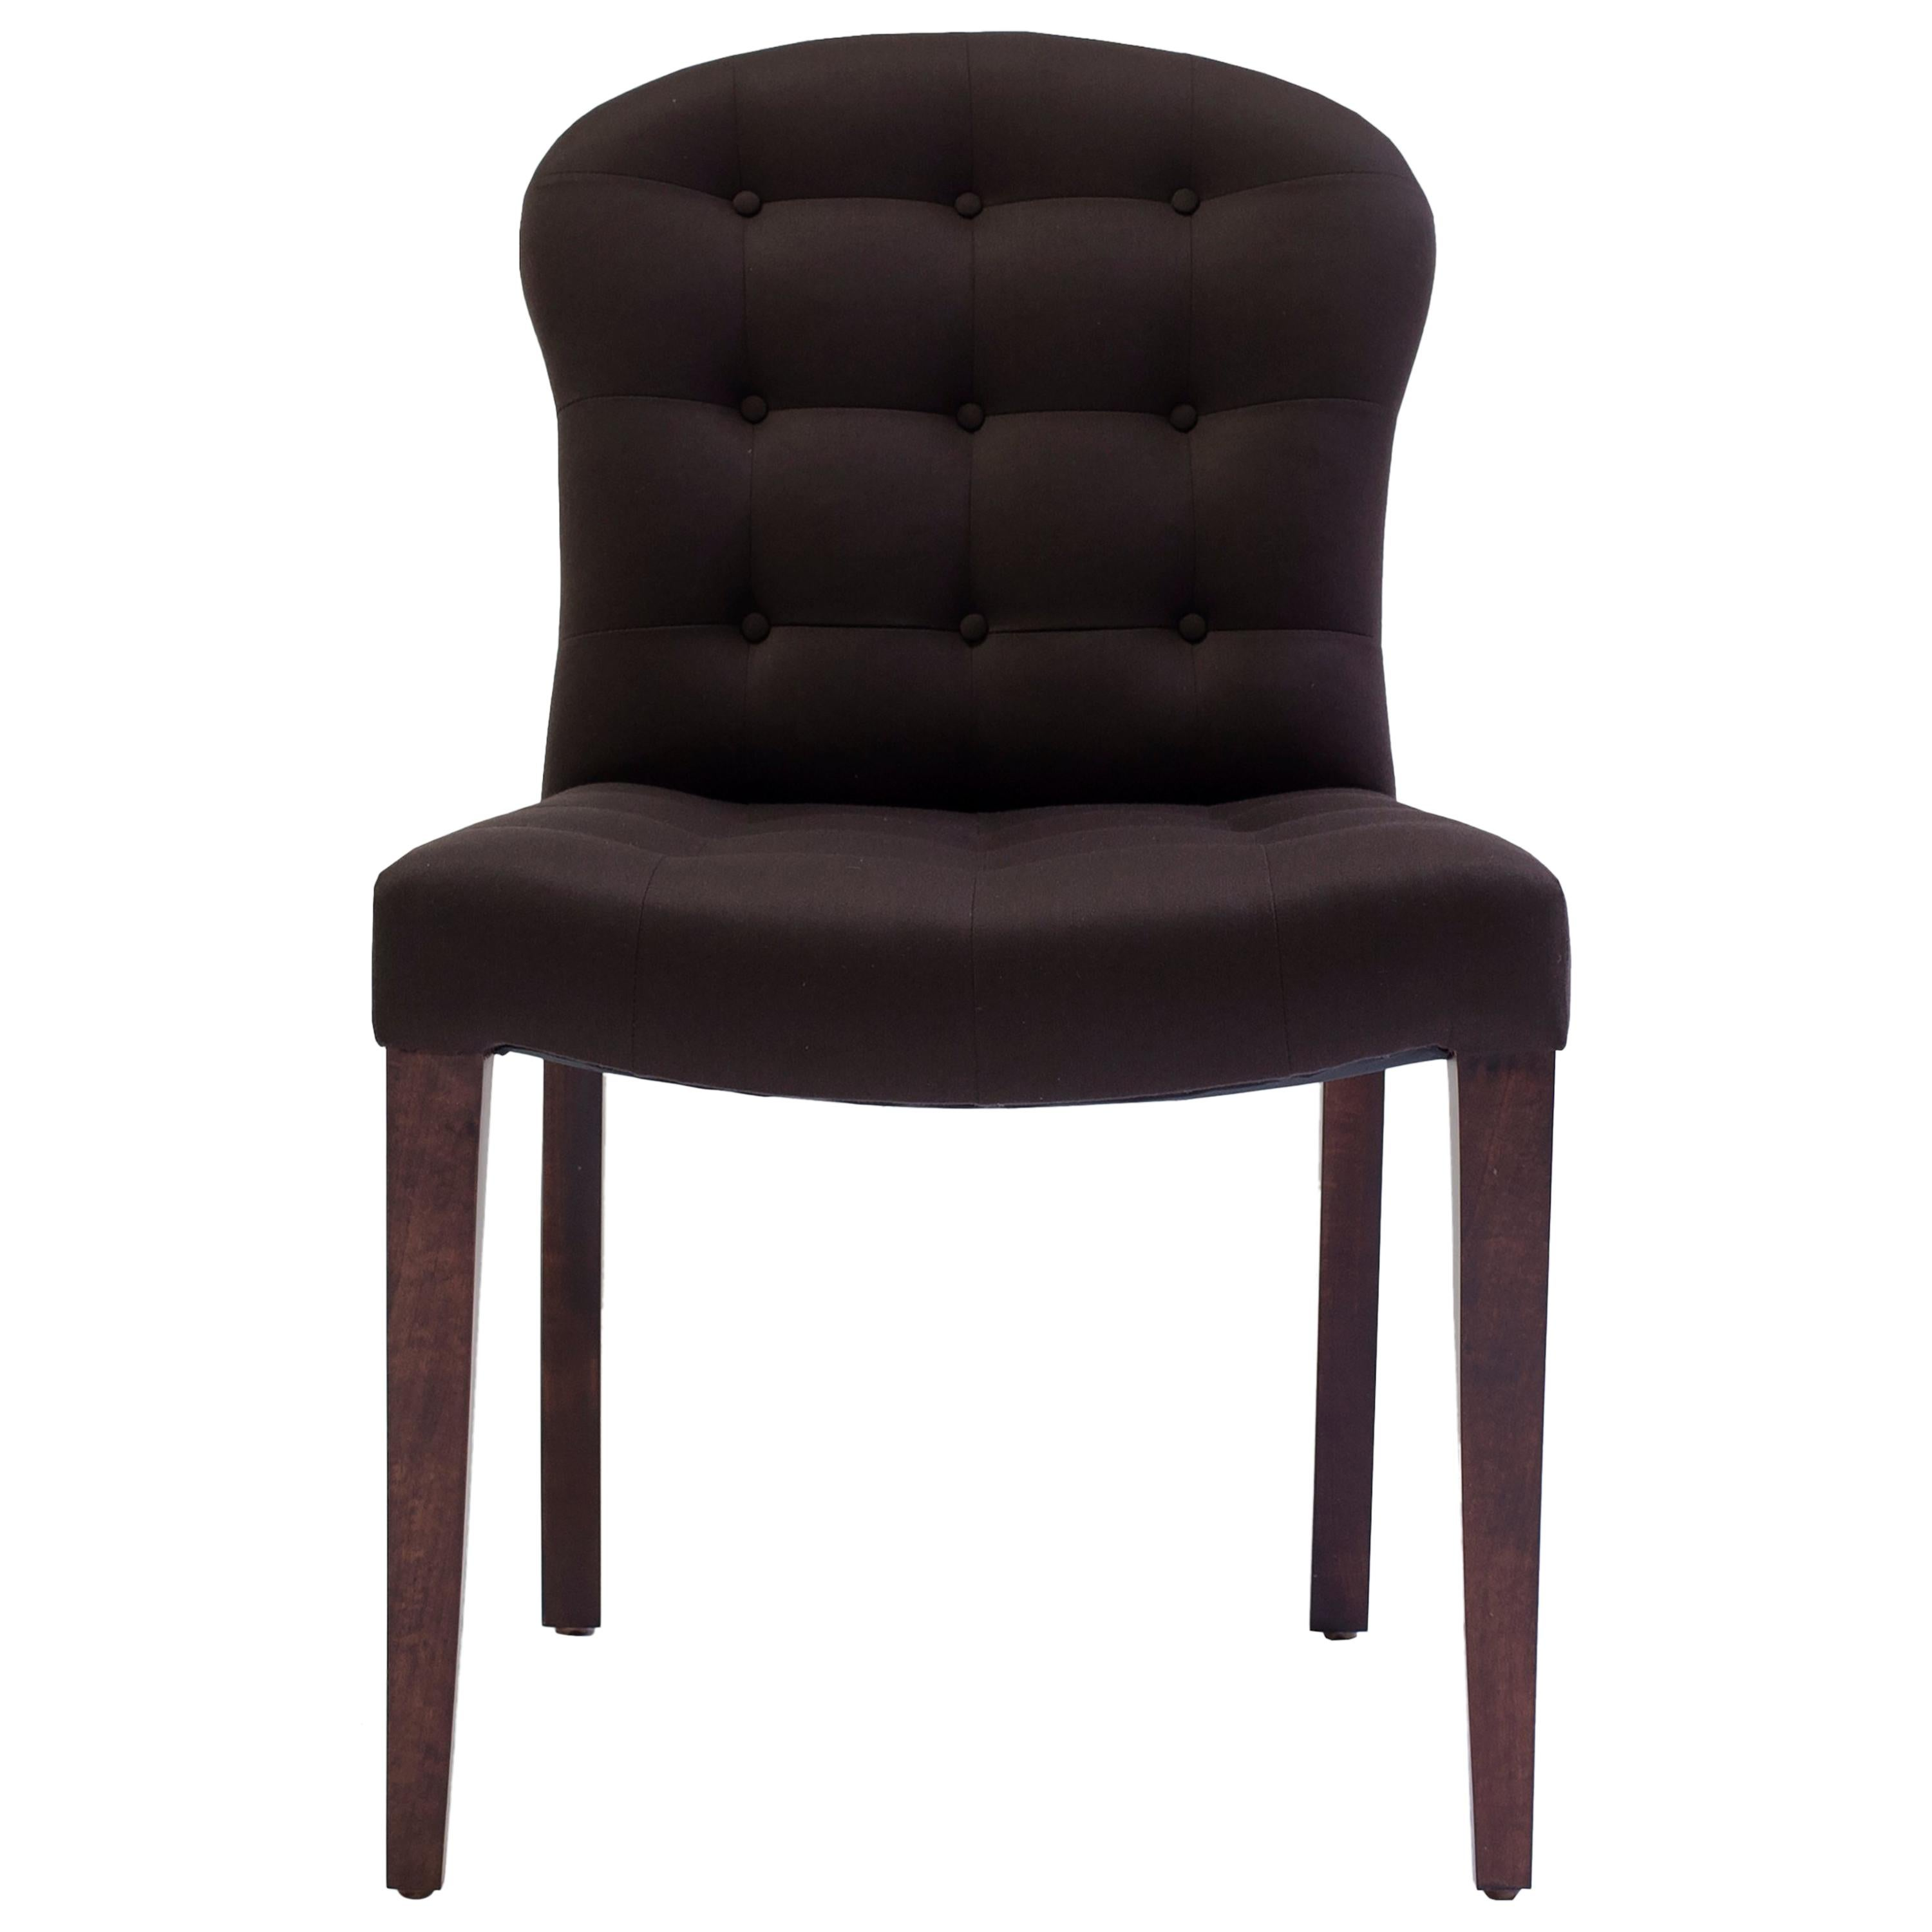 Bisquit Tufted Dining Side Chair with Wood Legs and Balloon Shaped Back